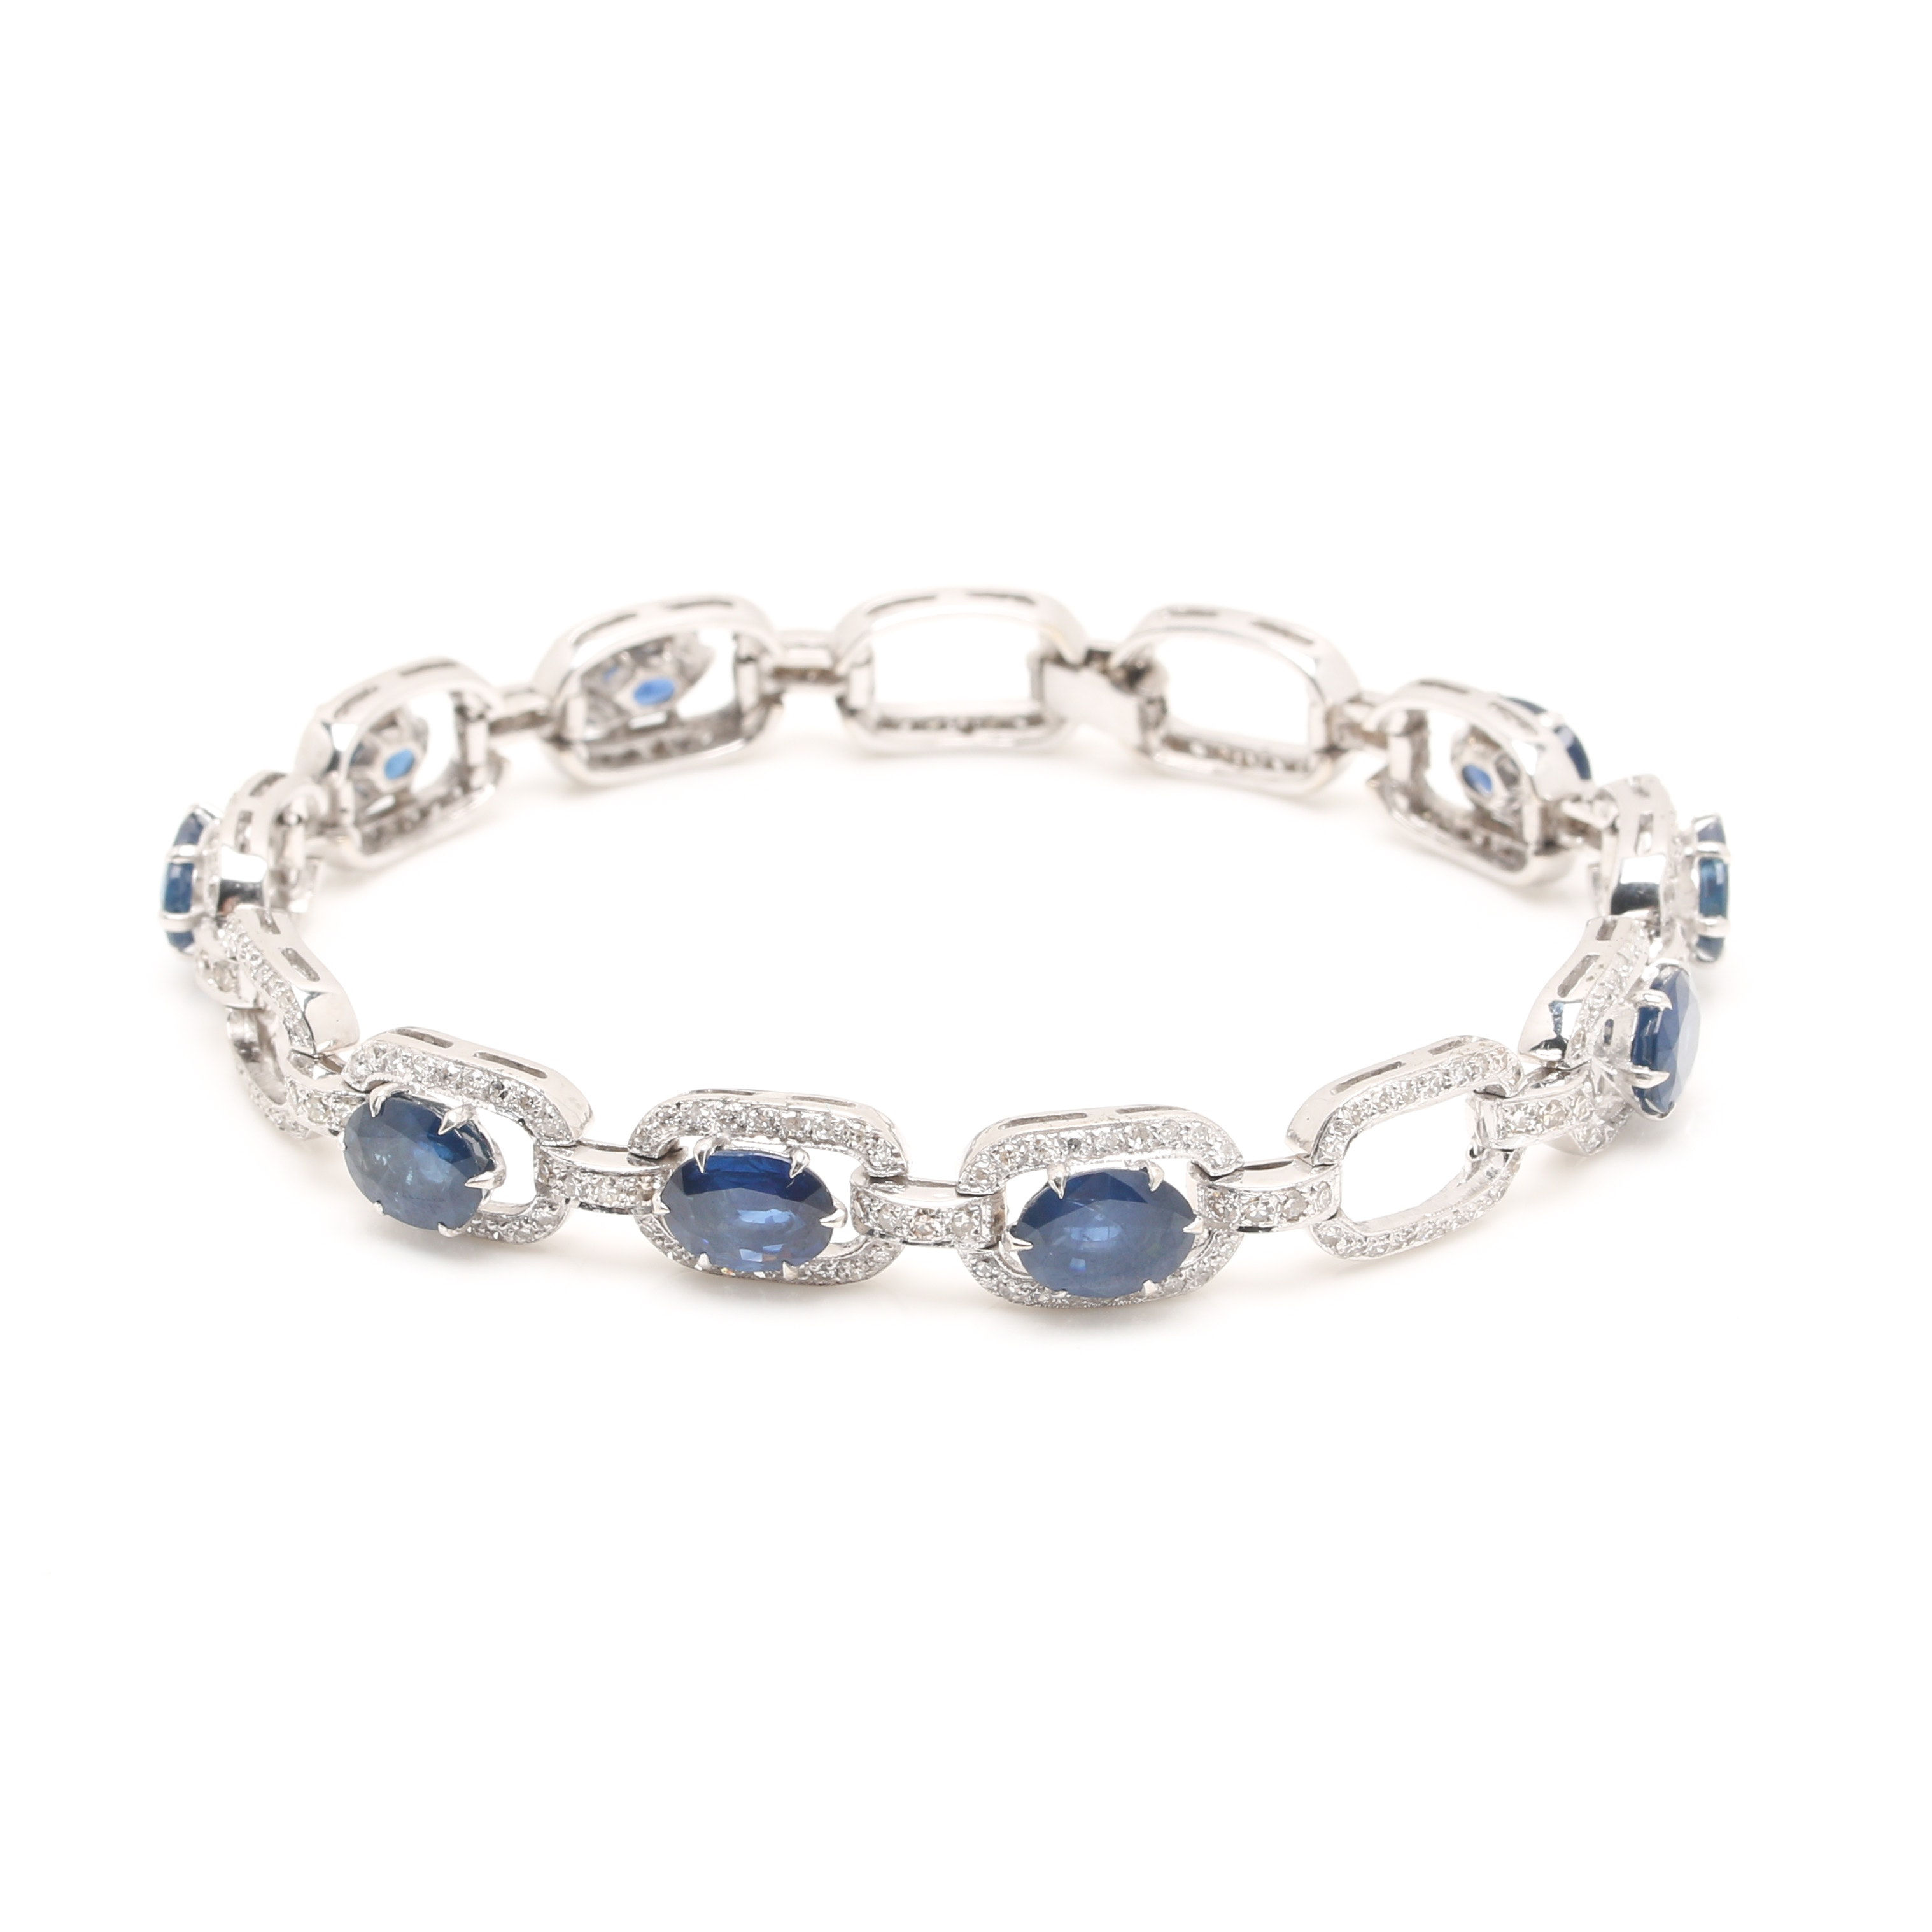 18K White Gold 15.85 CTW Sapphire and 2.18 CTW Diamond Bracelet